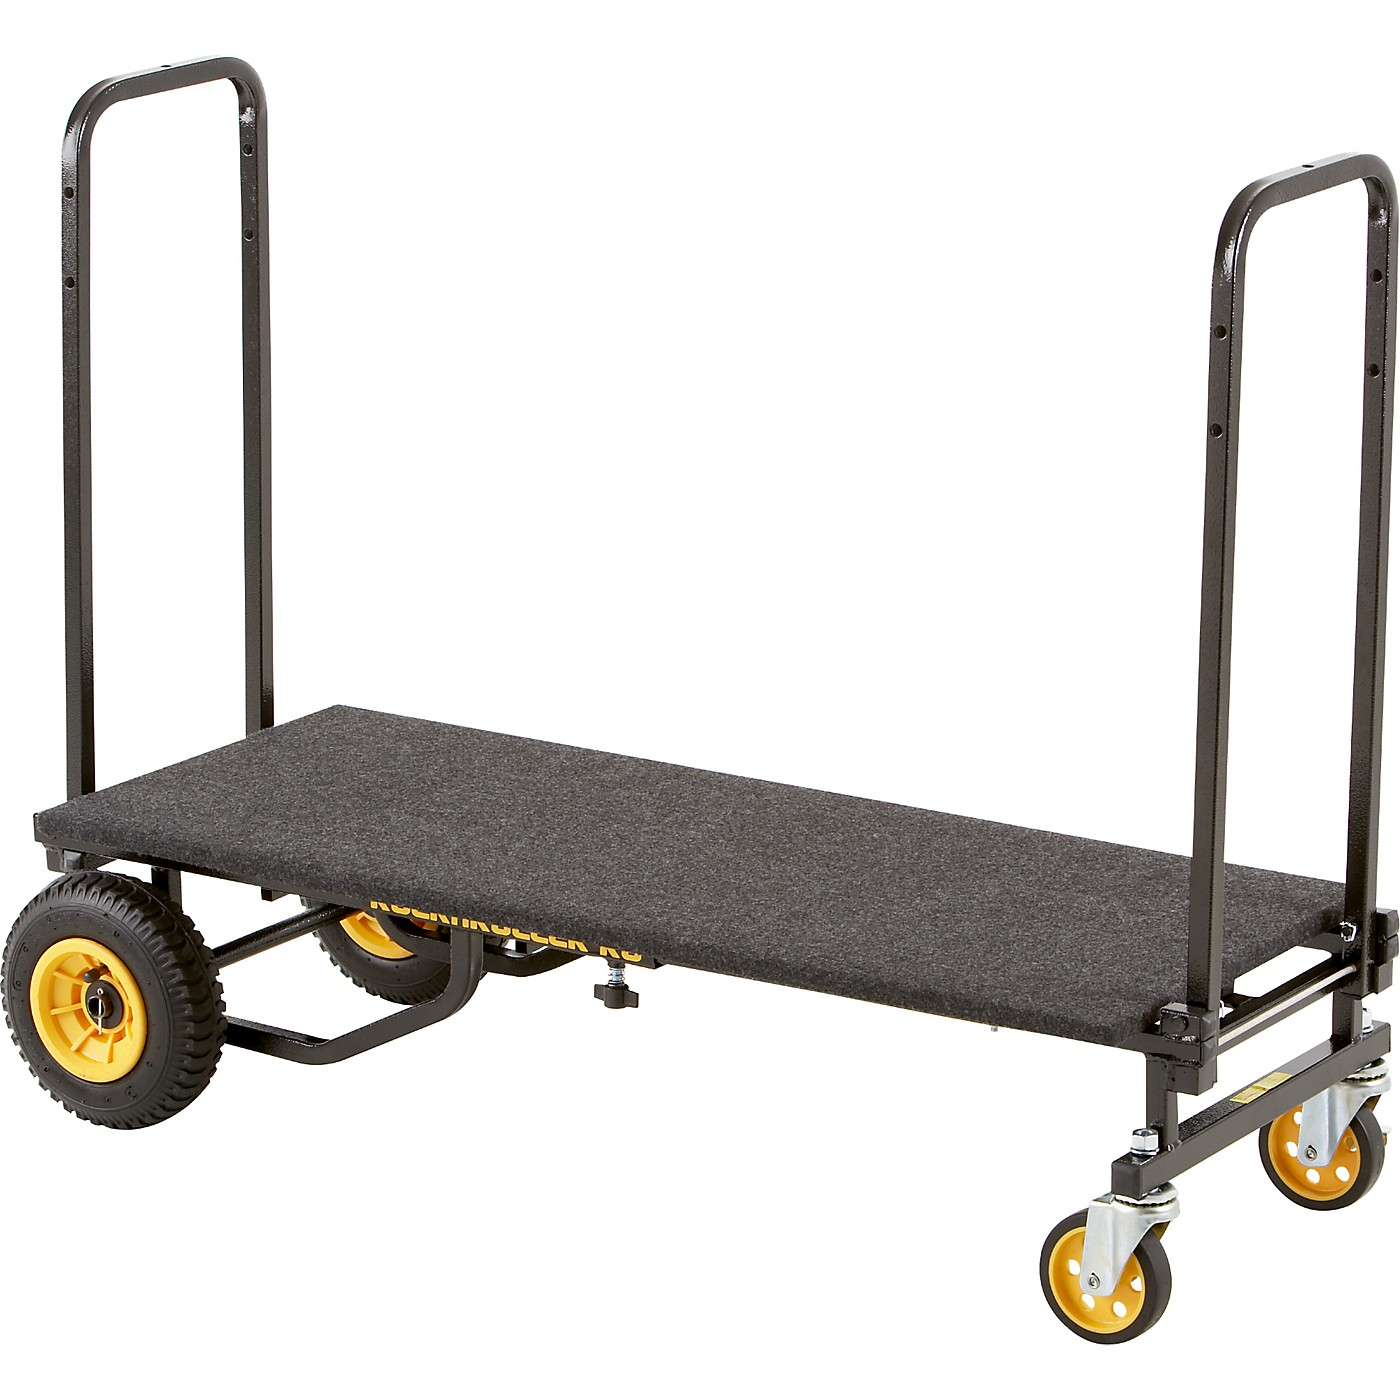 Rock N Roller R6RT 8-in-1 Mini Multi-Cart With Deck thumbnail